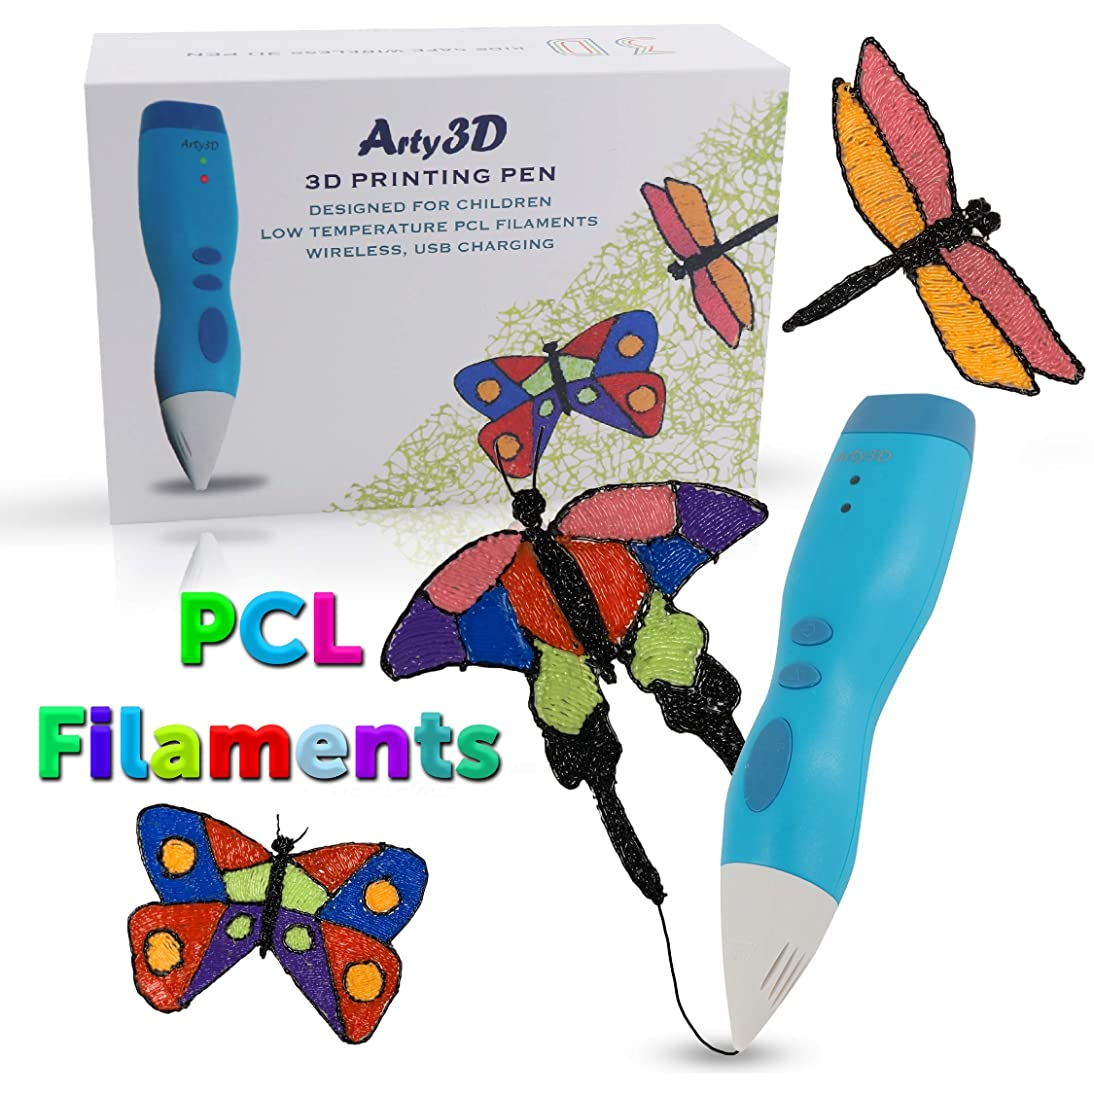 3D Printing Pen 3D Drawing Pen PCL Filaments Art and Craft Doodler Low Temperature Safe for Kids Modeling Pen Wireless USB Charging Clog Free Arty3D Blue